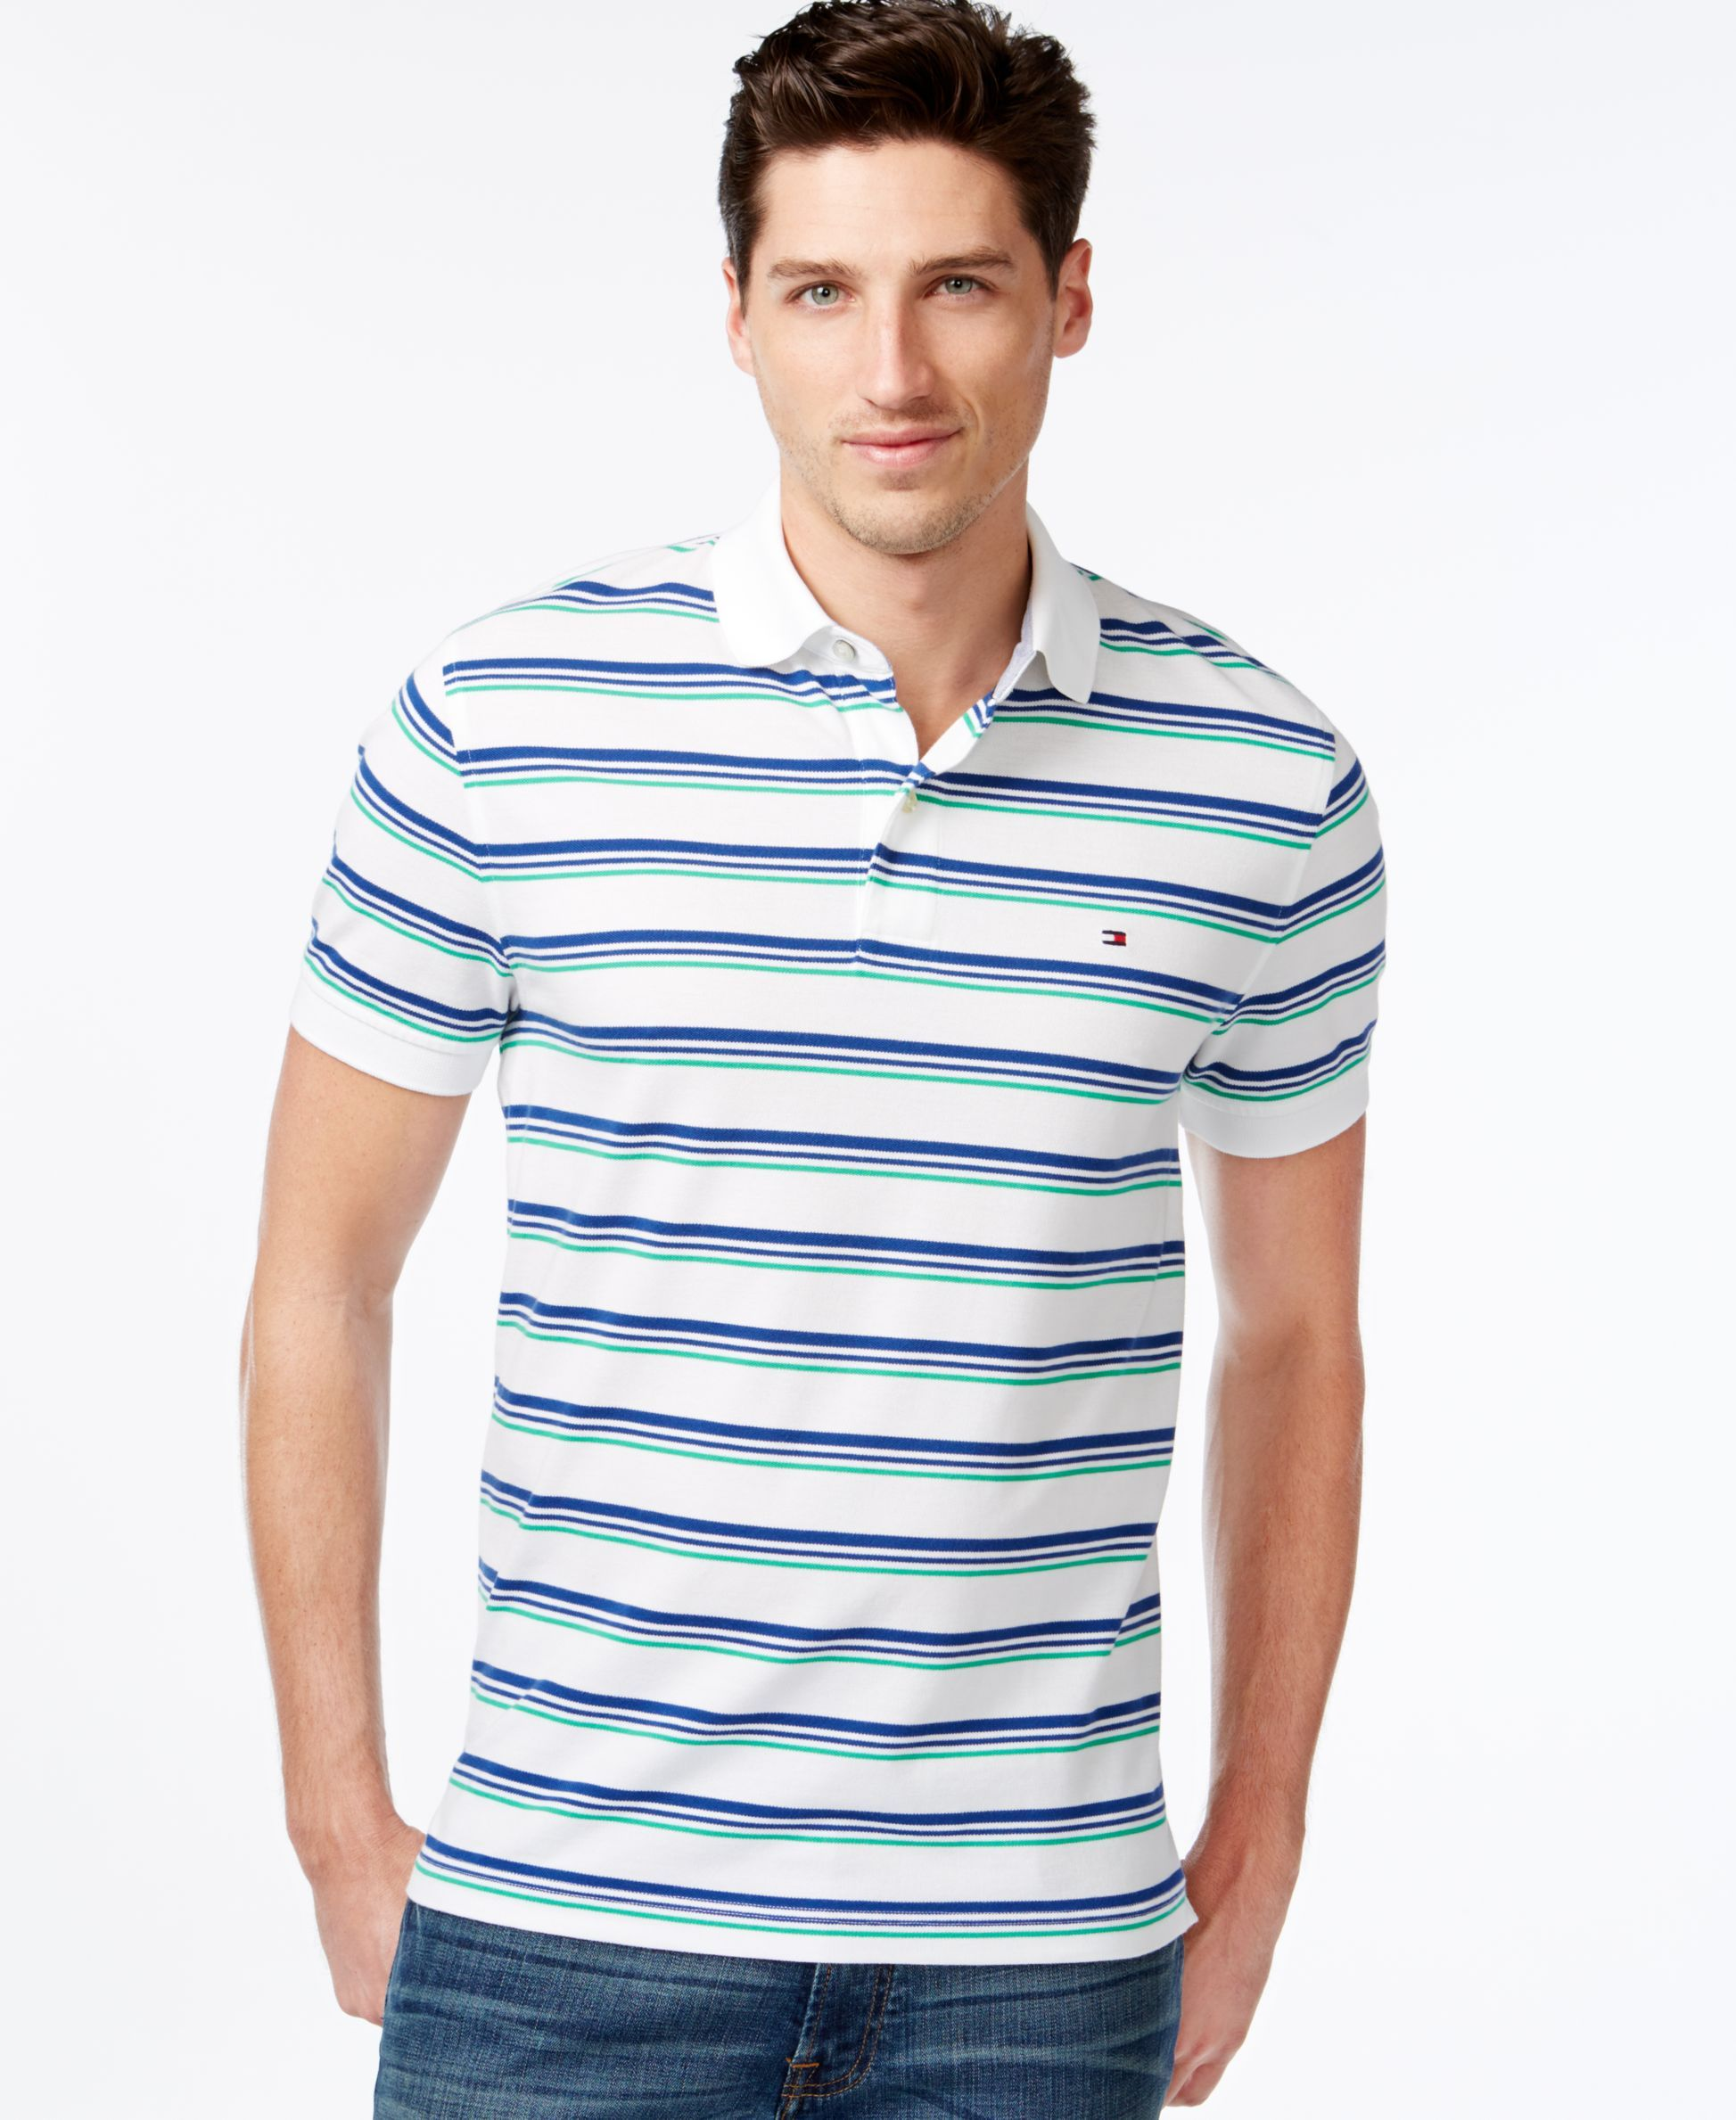 96df2730 Tommy Hilfiger Darius Stripe Polo Lacoste Polo Shirts, Polo T Shirts, Polo  Online,